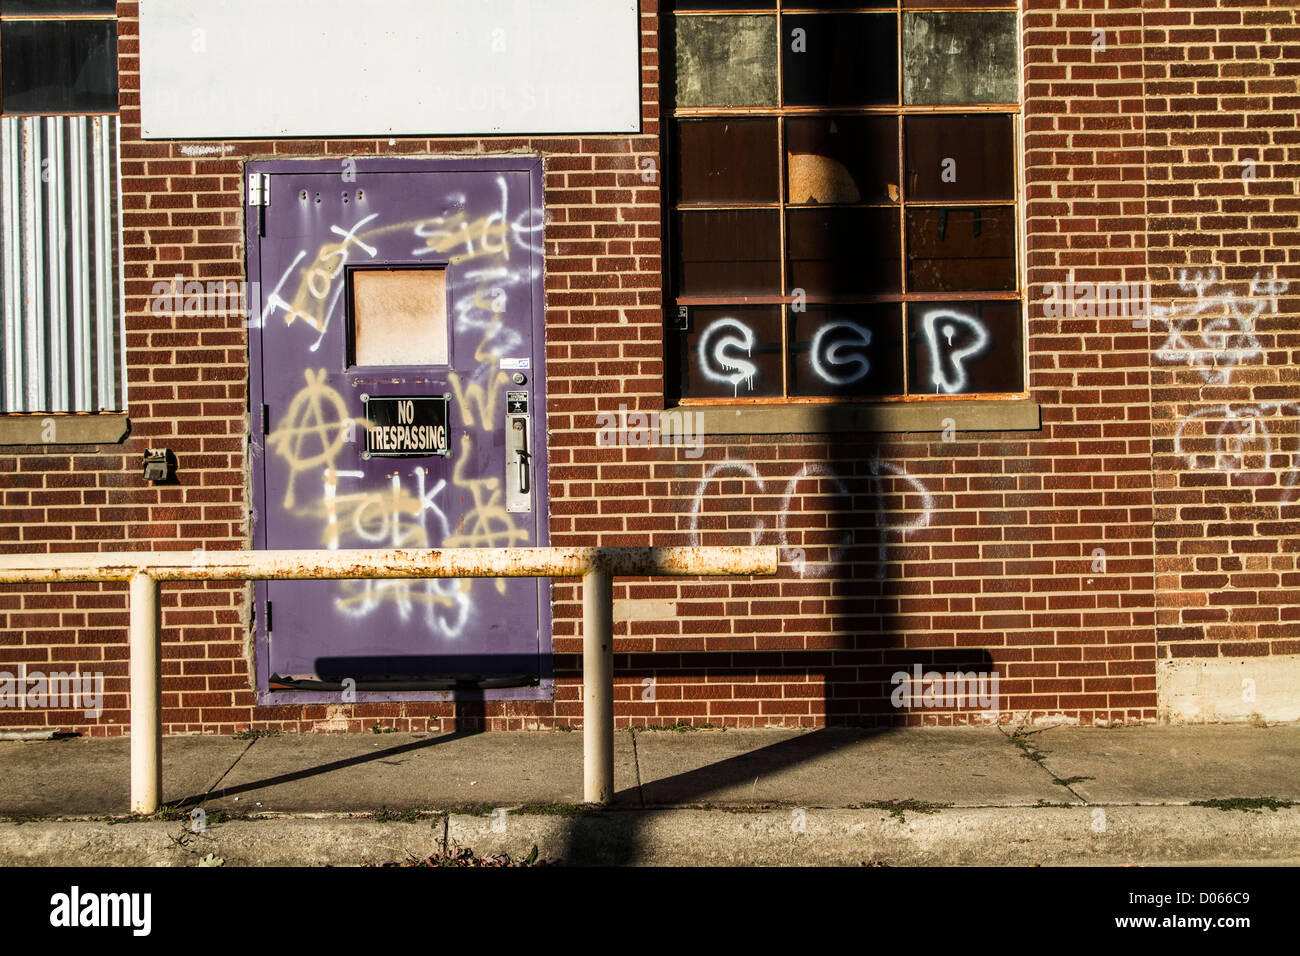 Old factory with graffiti - Stock Image